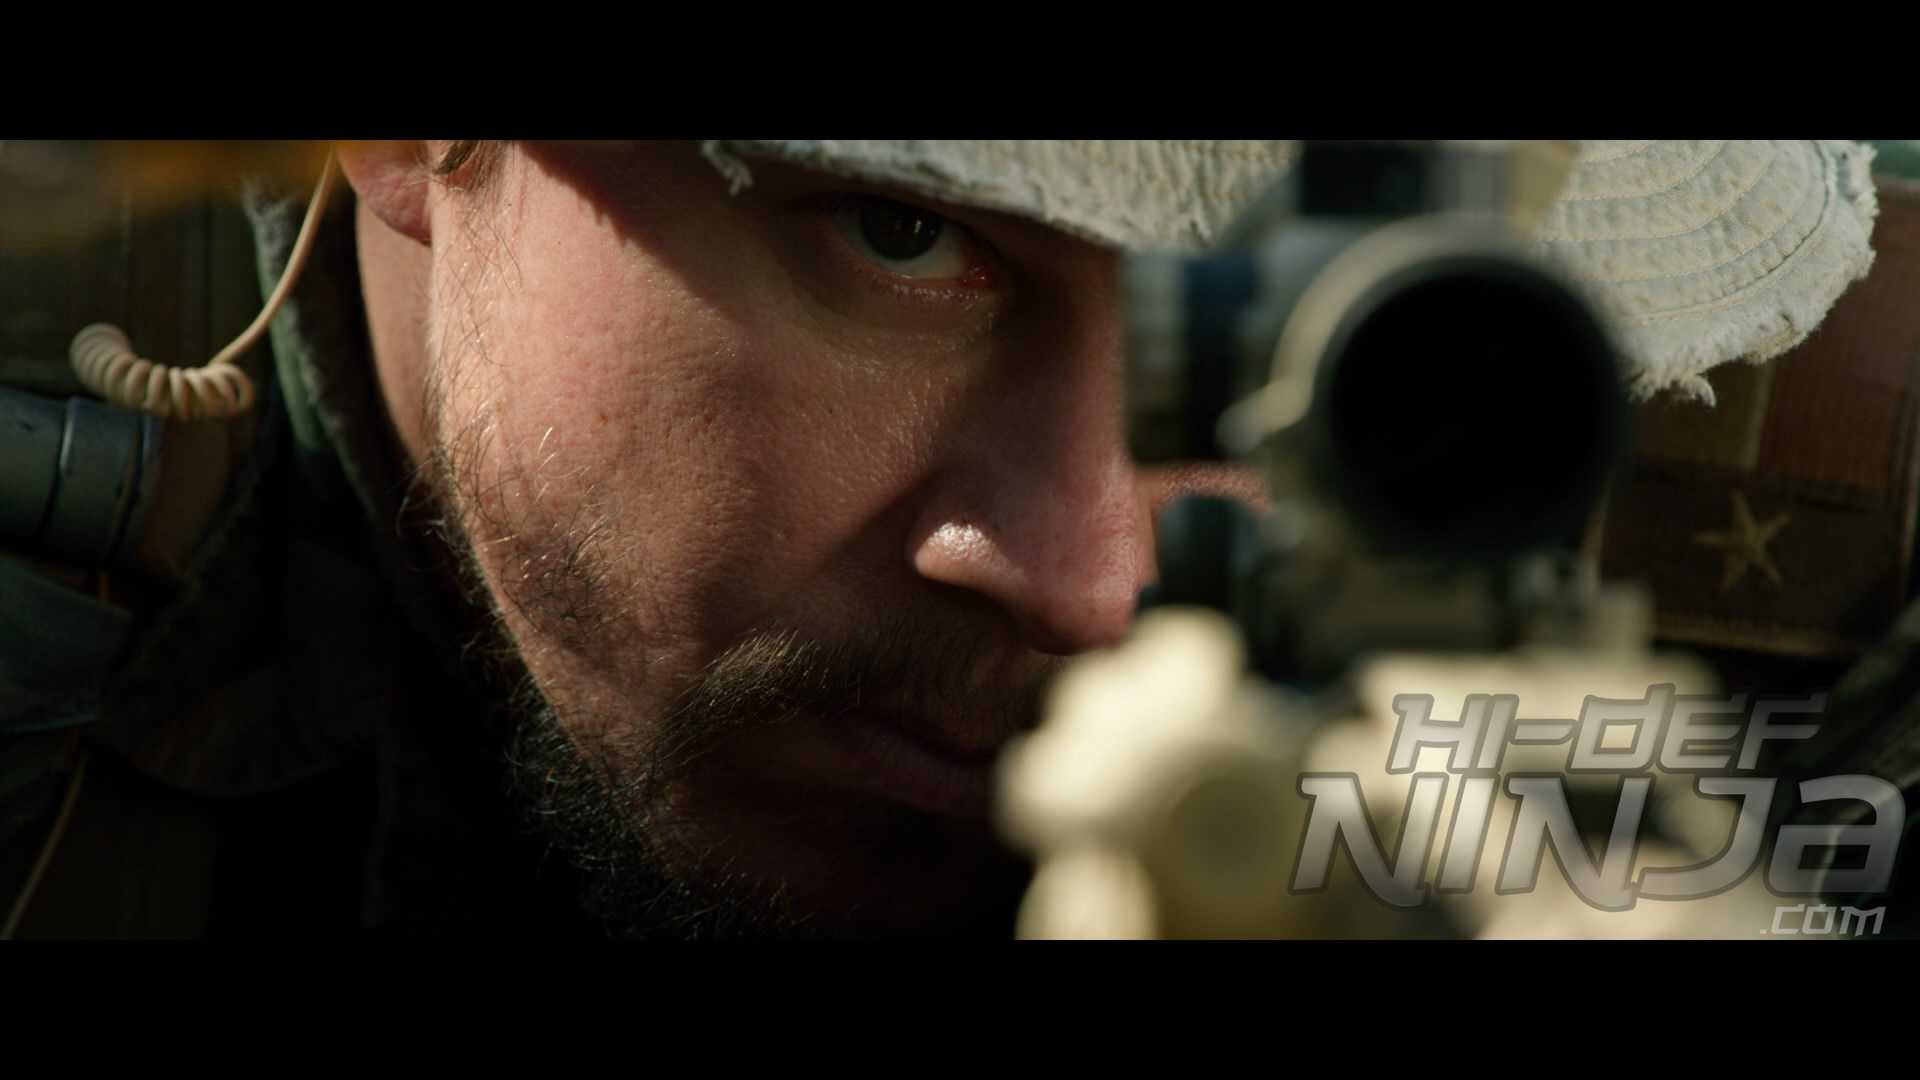 LoneSurvivor-6